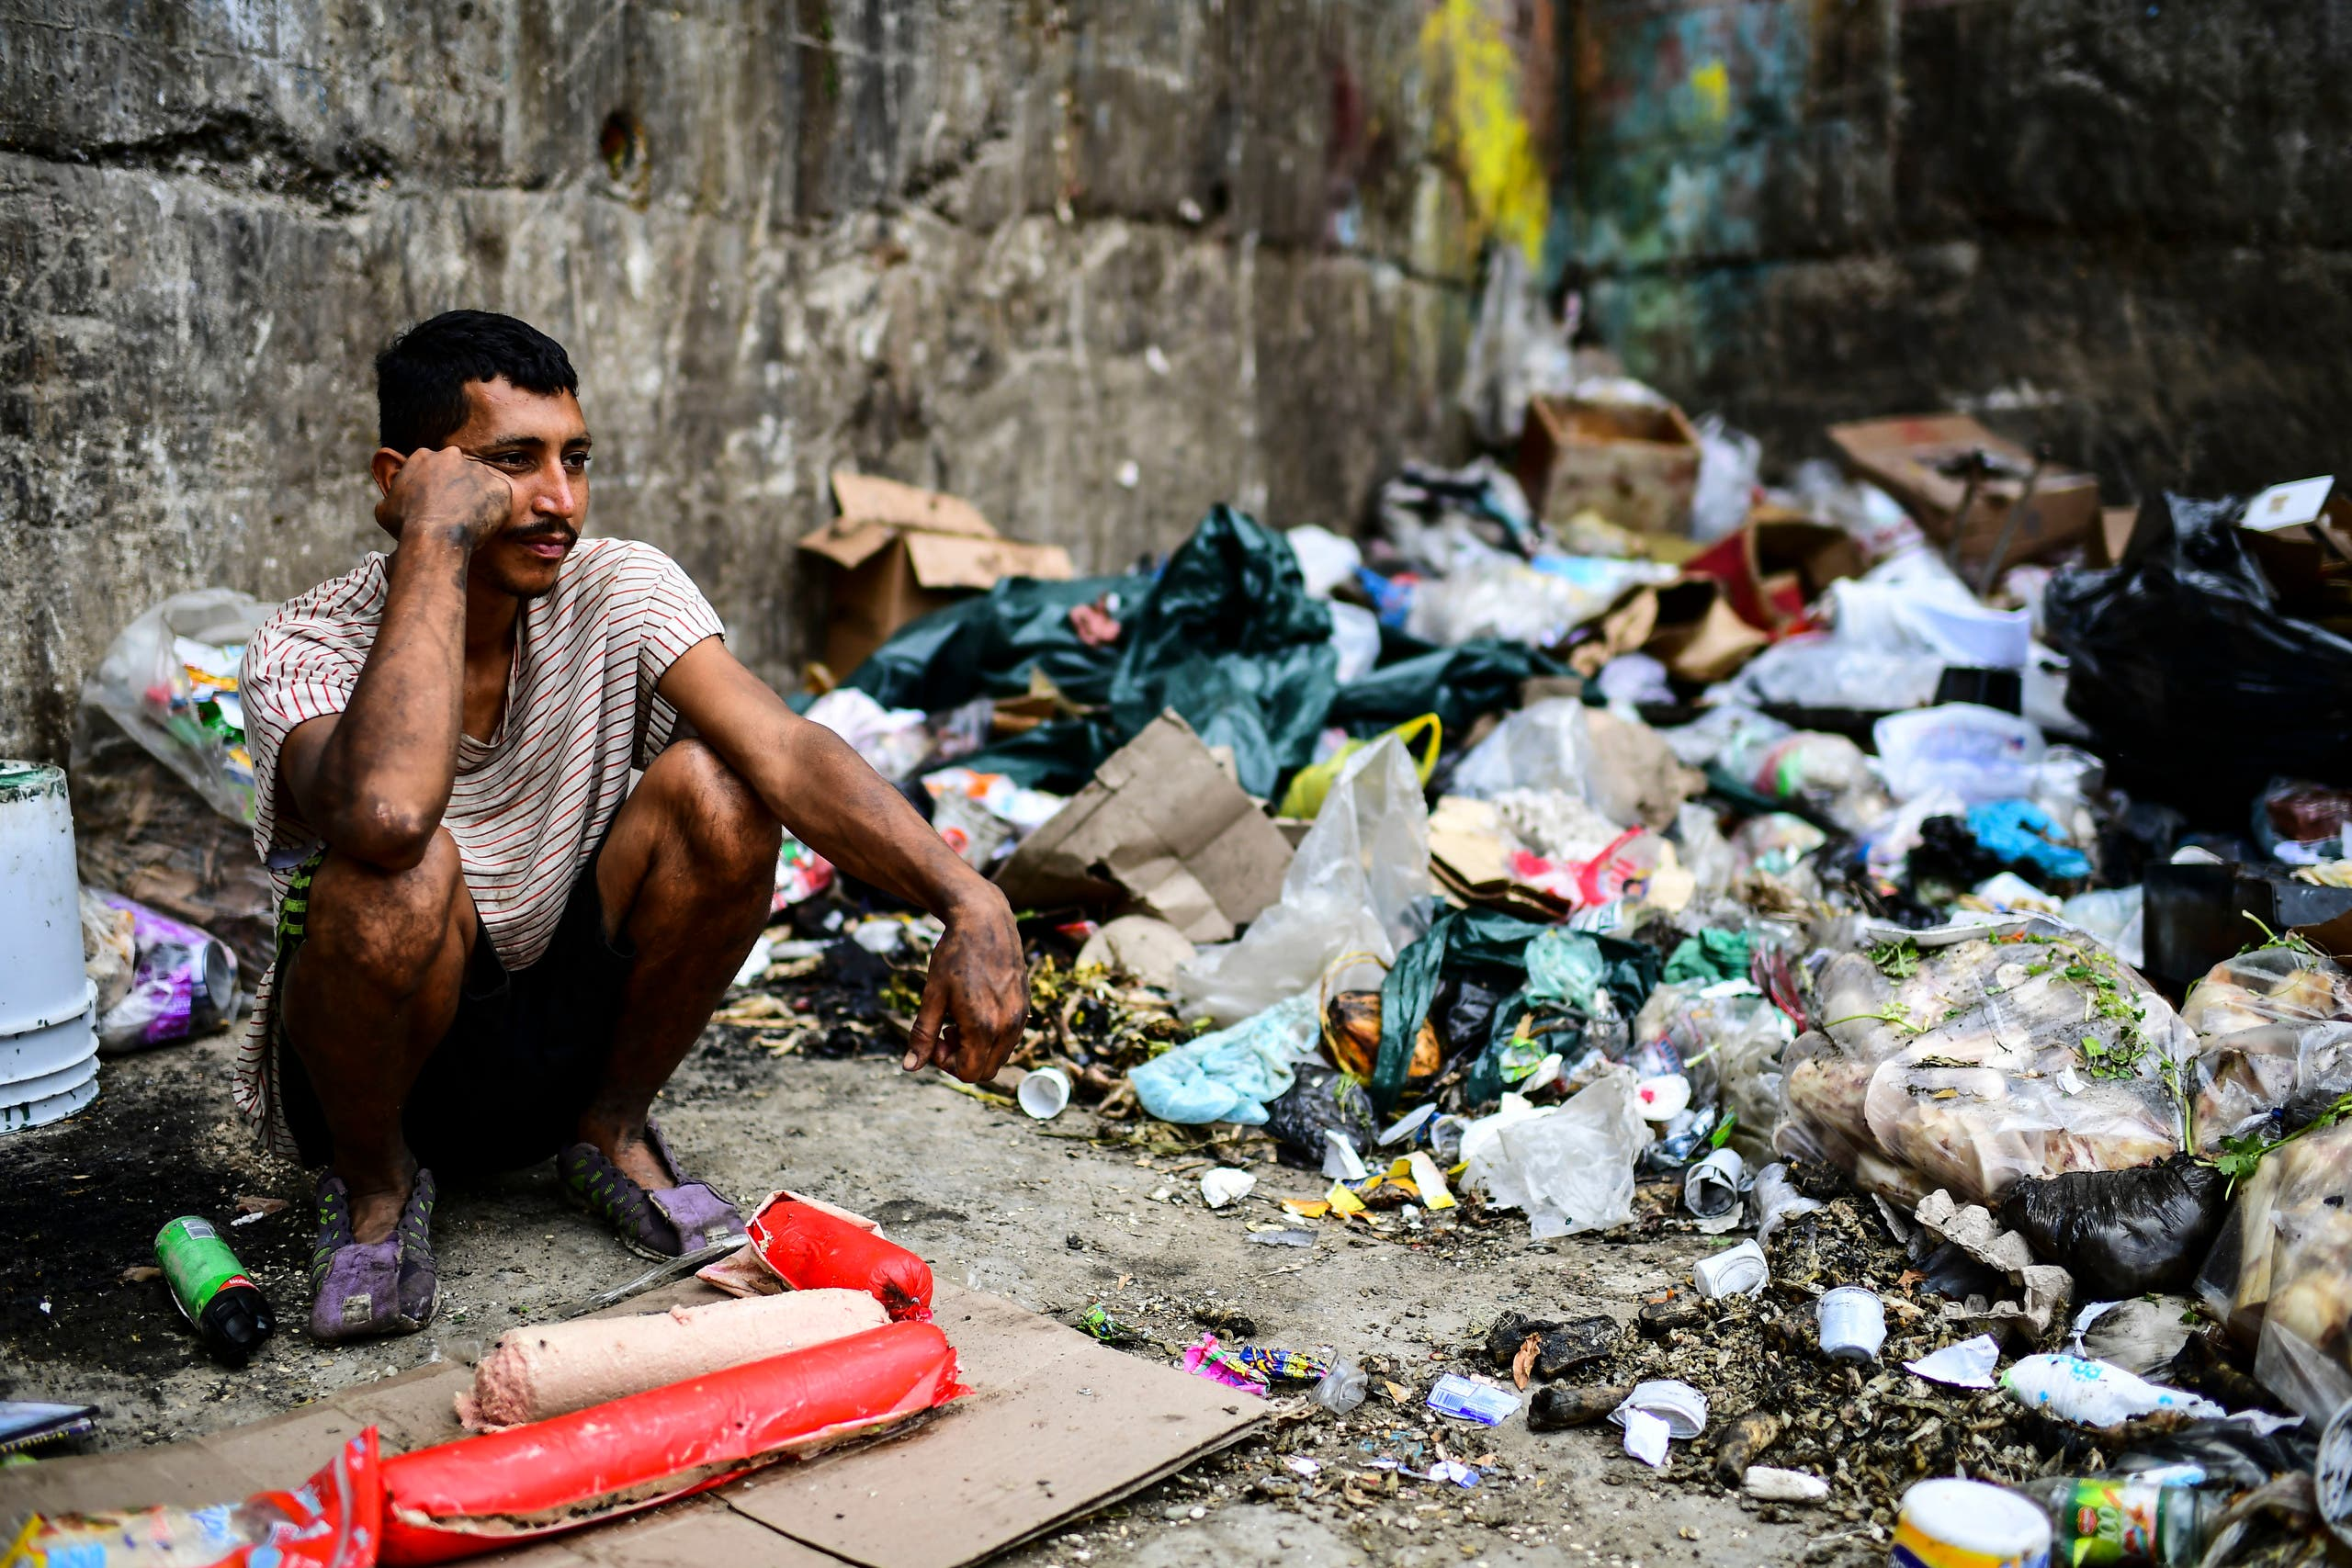 A man waits to get some food at a garbage dump in Las Minas de Baruta neighborhood, Caracas, Venezuela, on March 14, 2019. (AFP)